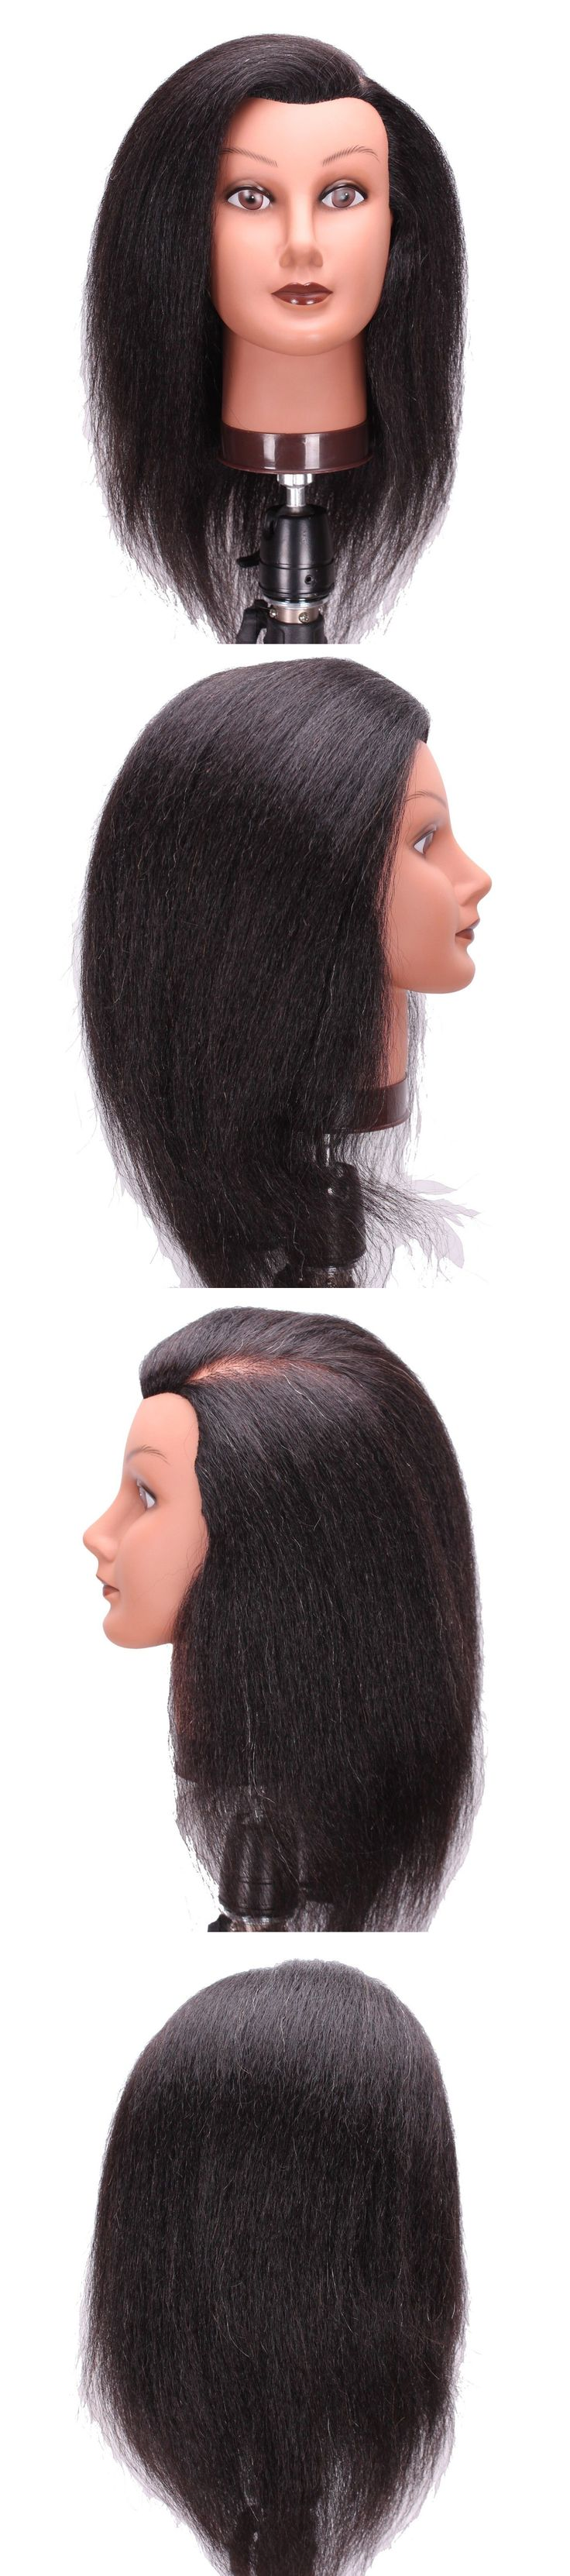 Other Salon and Spa Equipment: Lians 14-15 Yak Hair Cosmetology Mannequin Manikin Head Black Color BUY IT NOW ONLY: $31.99